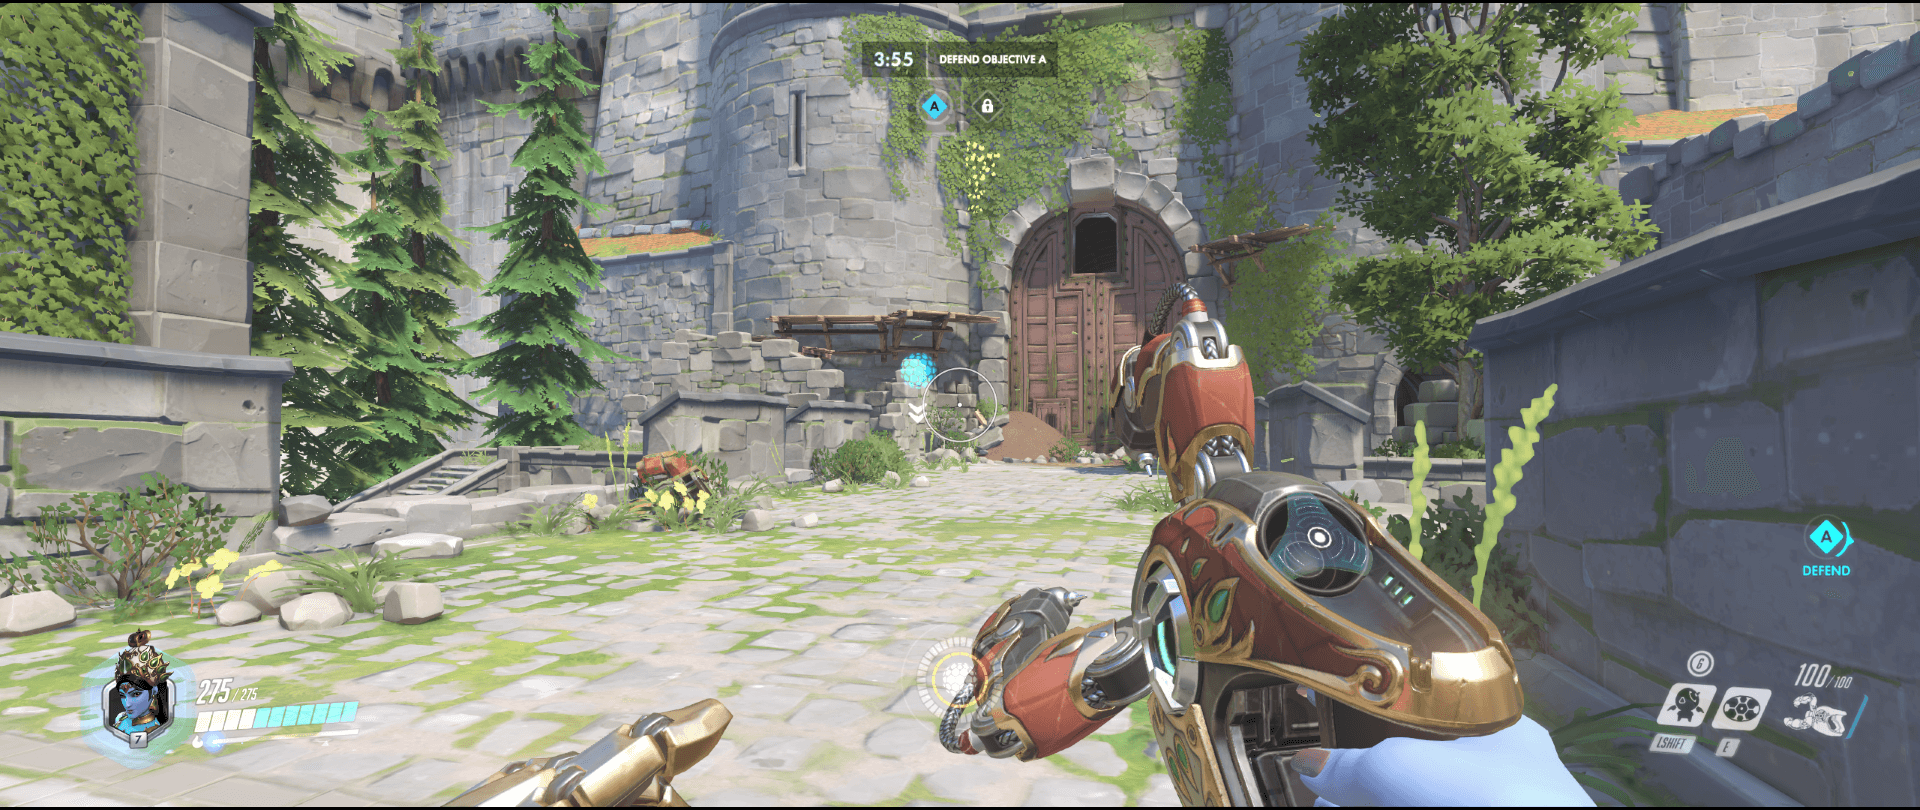 Symmetra shield generator spot Eichenwalde main range second point.png